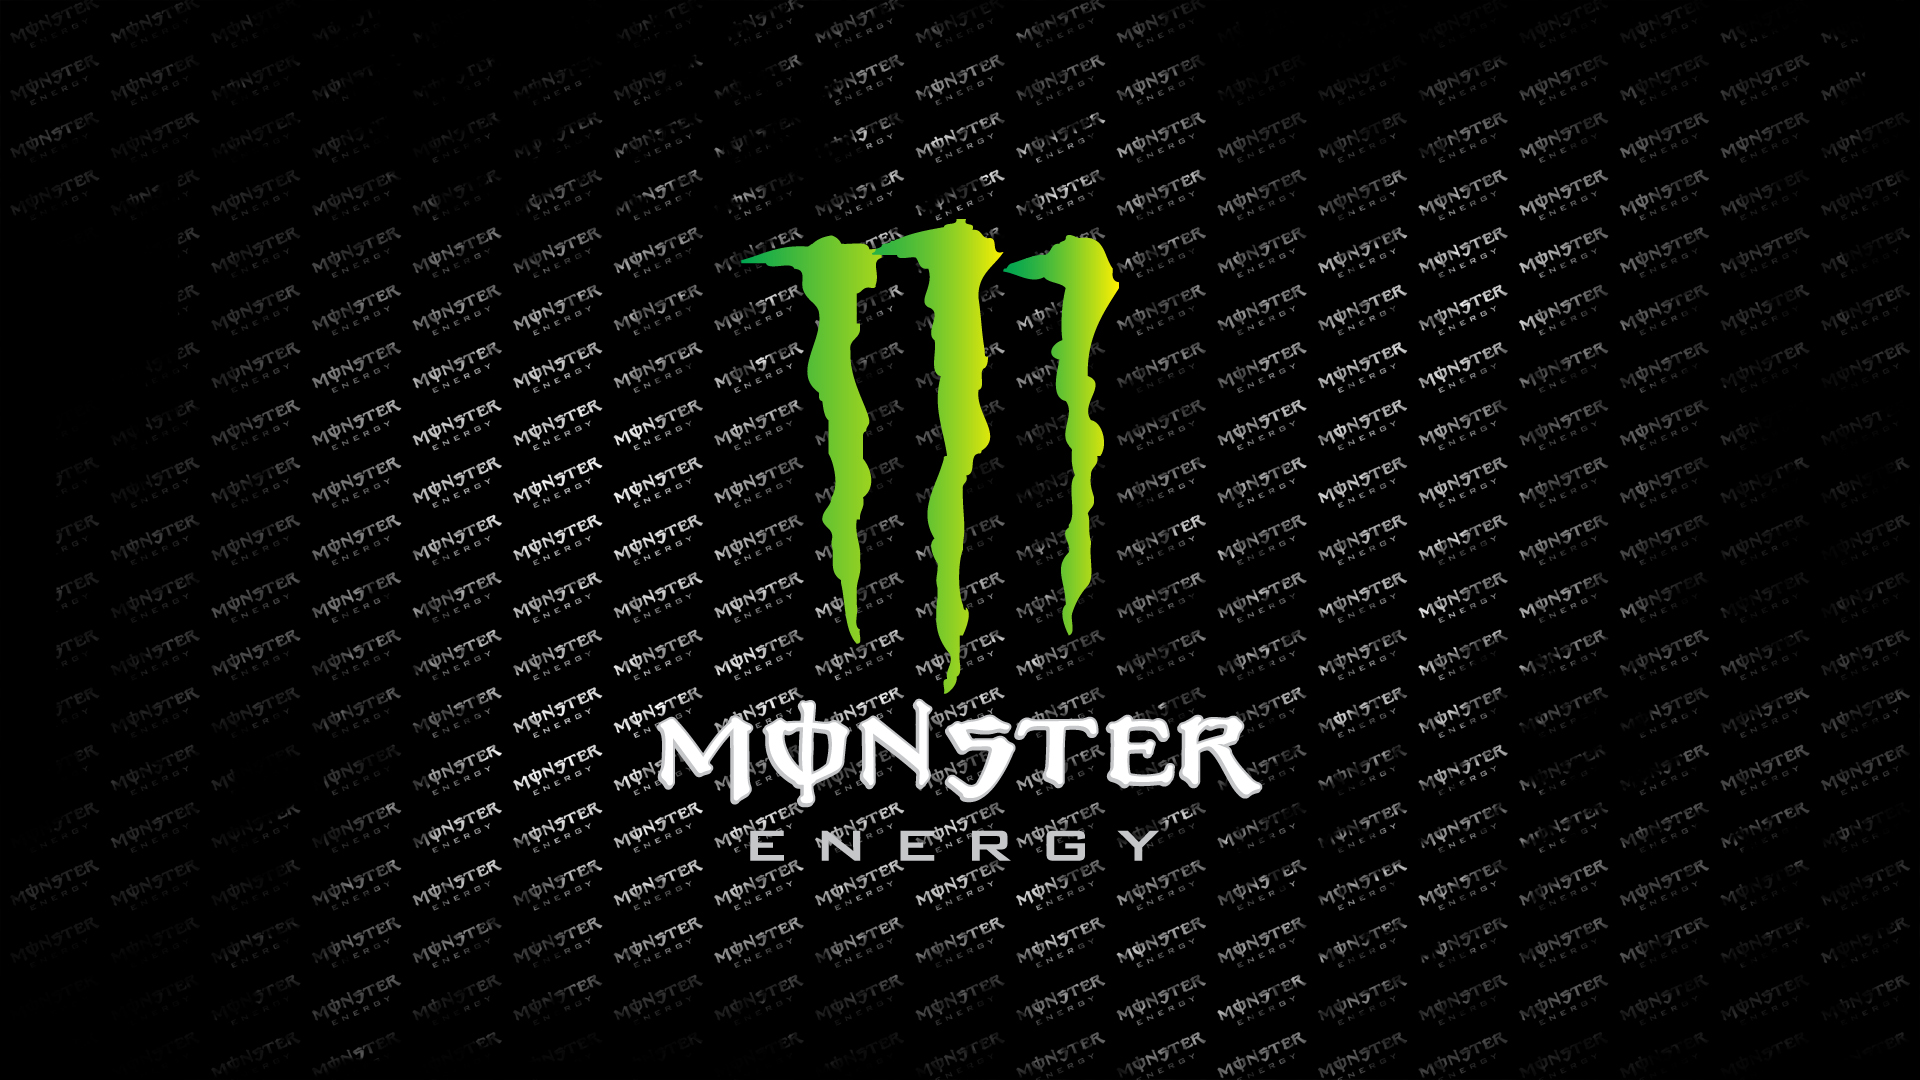 Monster Energy wallpaper   760907 1920x1080